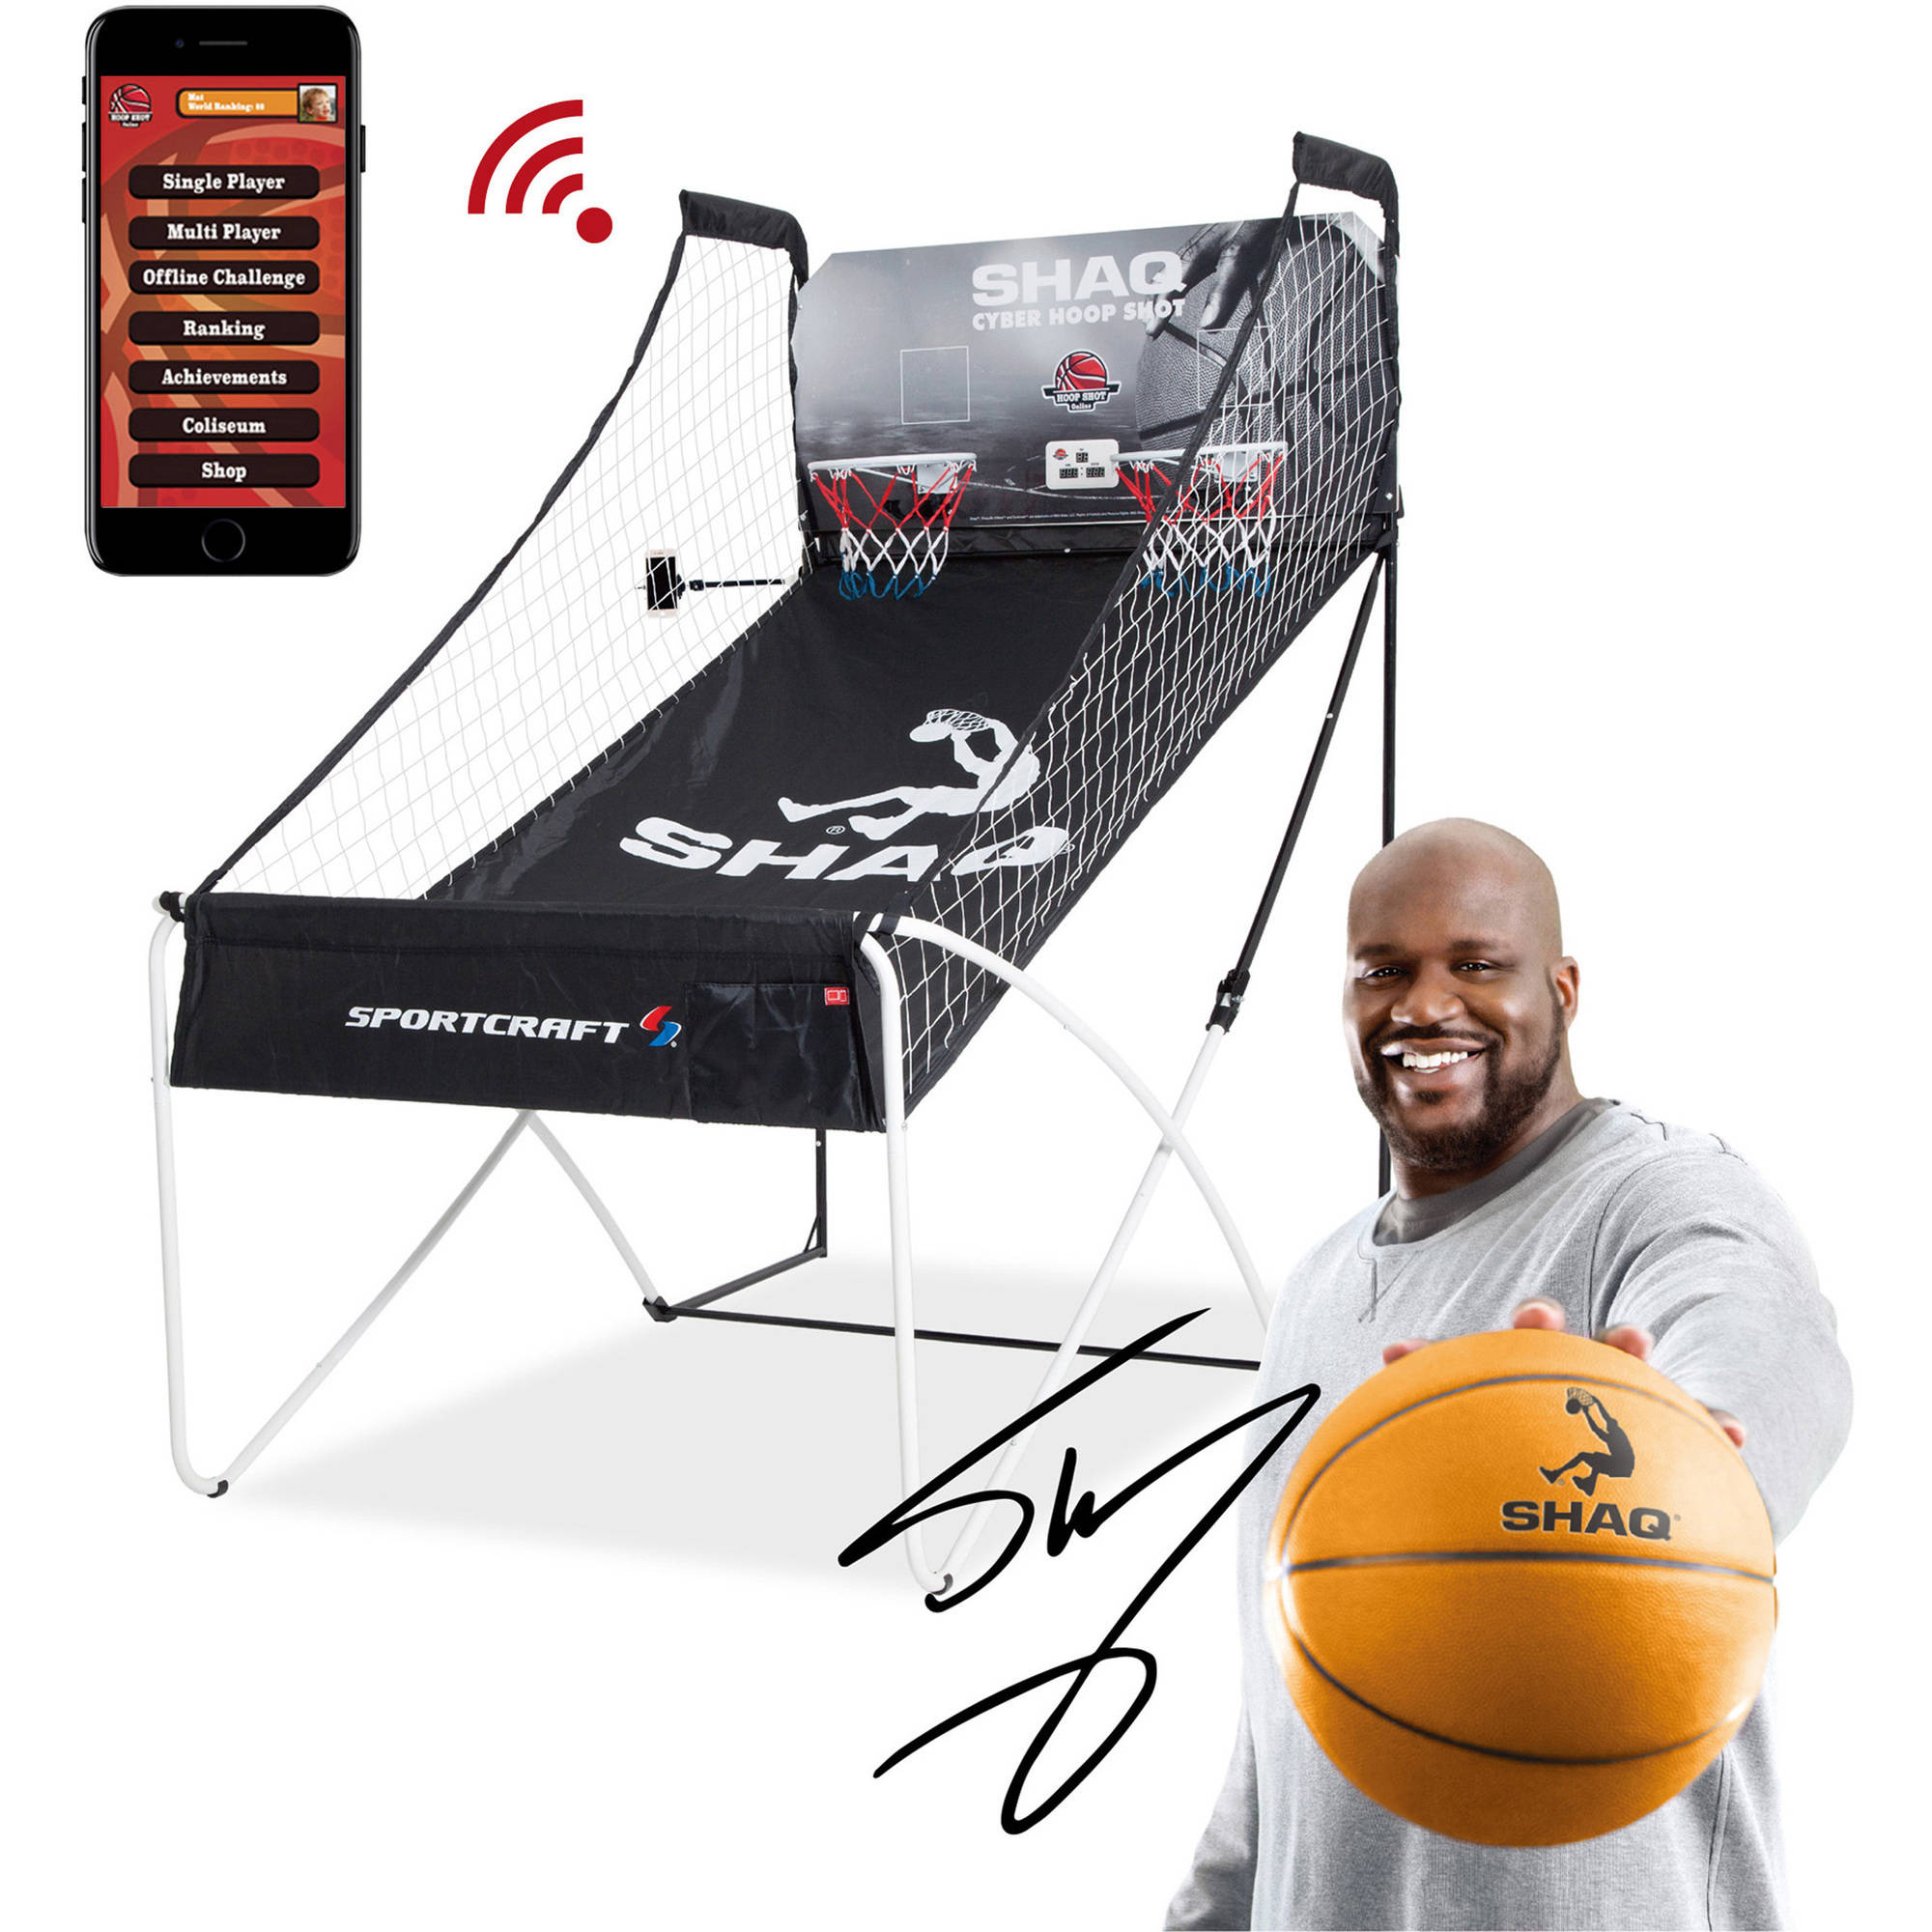 SHAQ Double Hoop Shot Basketball Arcade Conventional   Online App Game Sportcraft